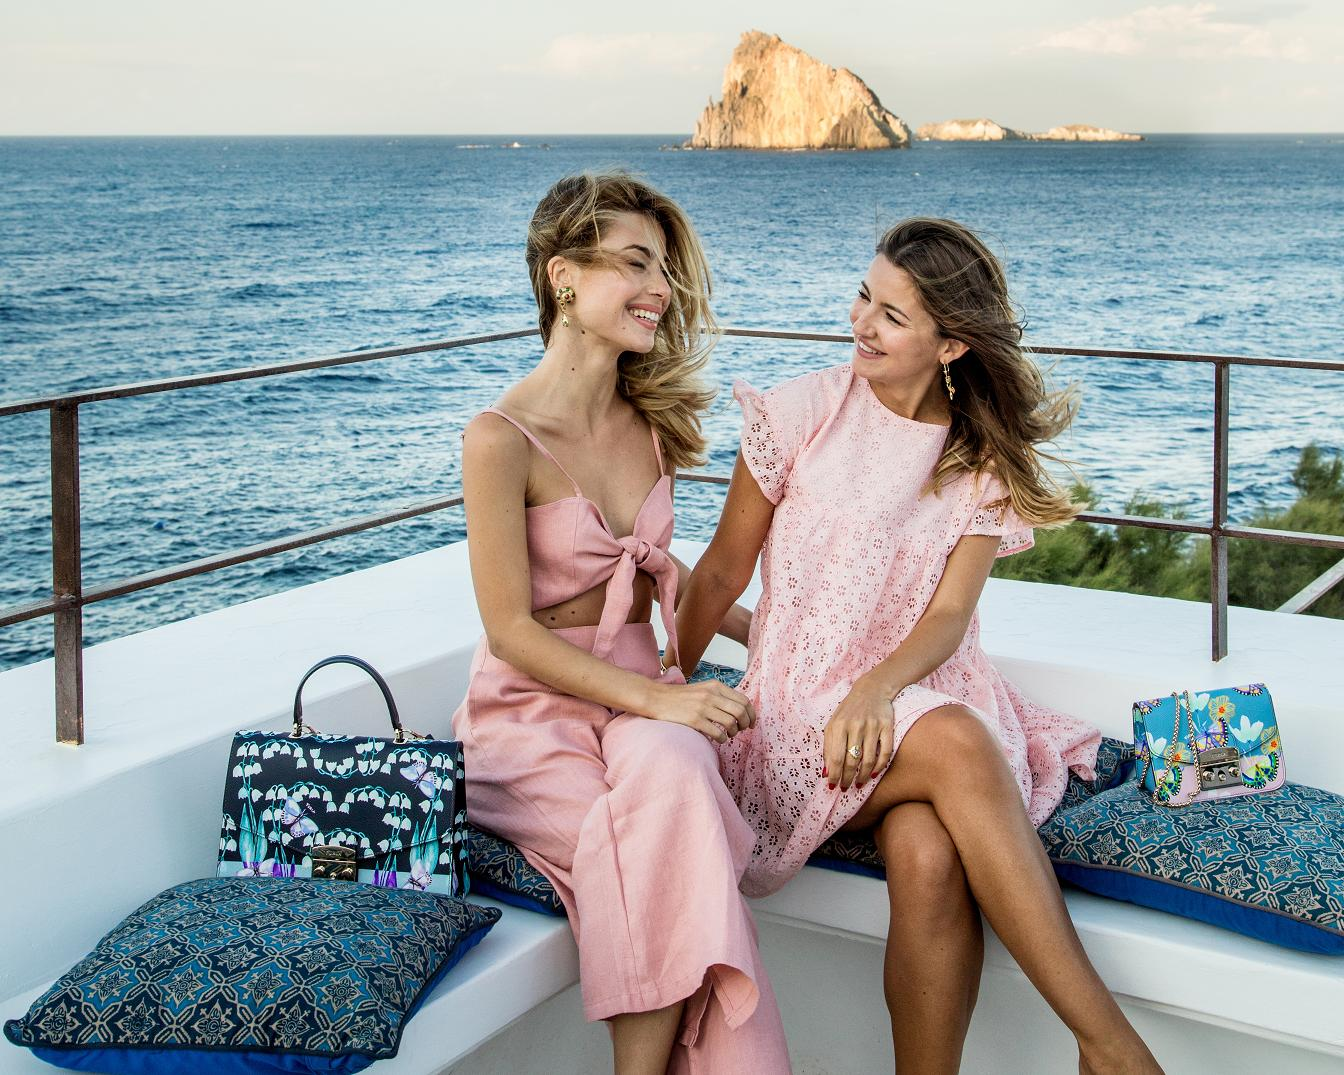 FURLA in a new digital project has become a guide to Italy